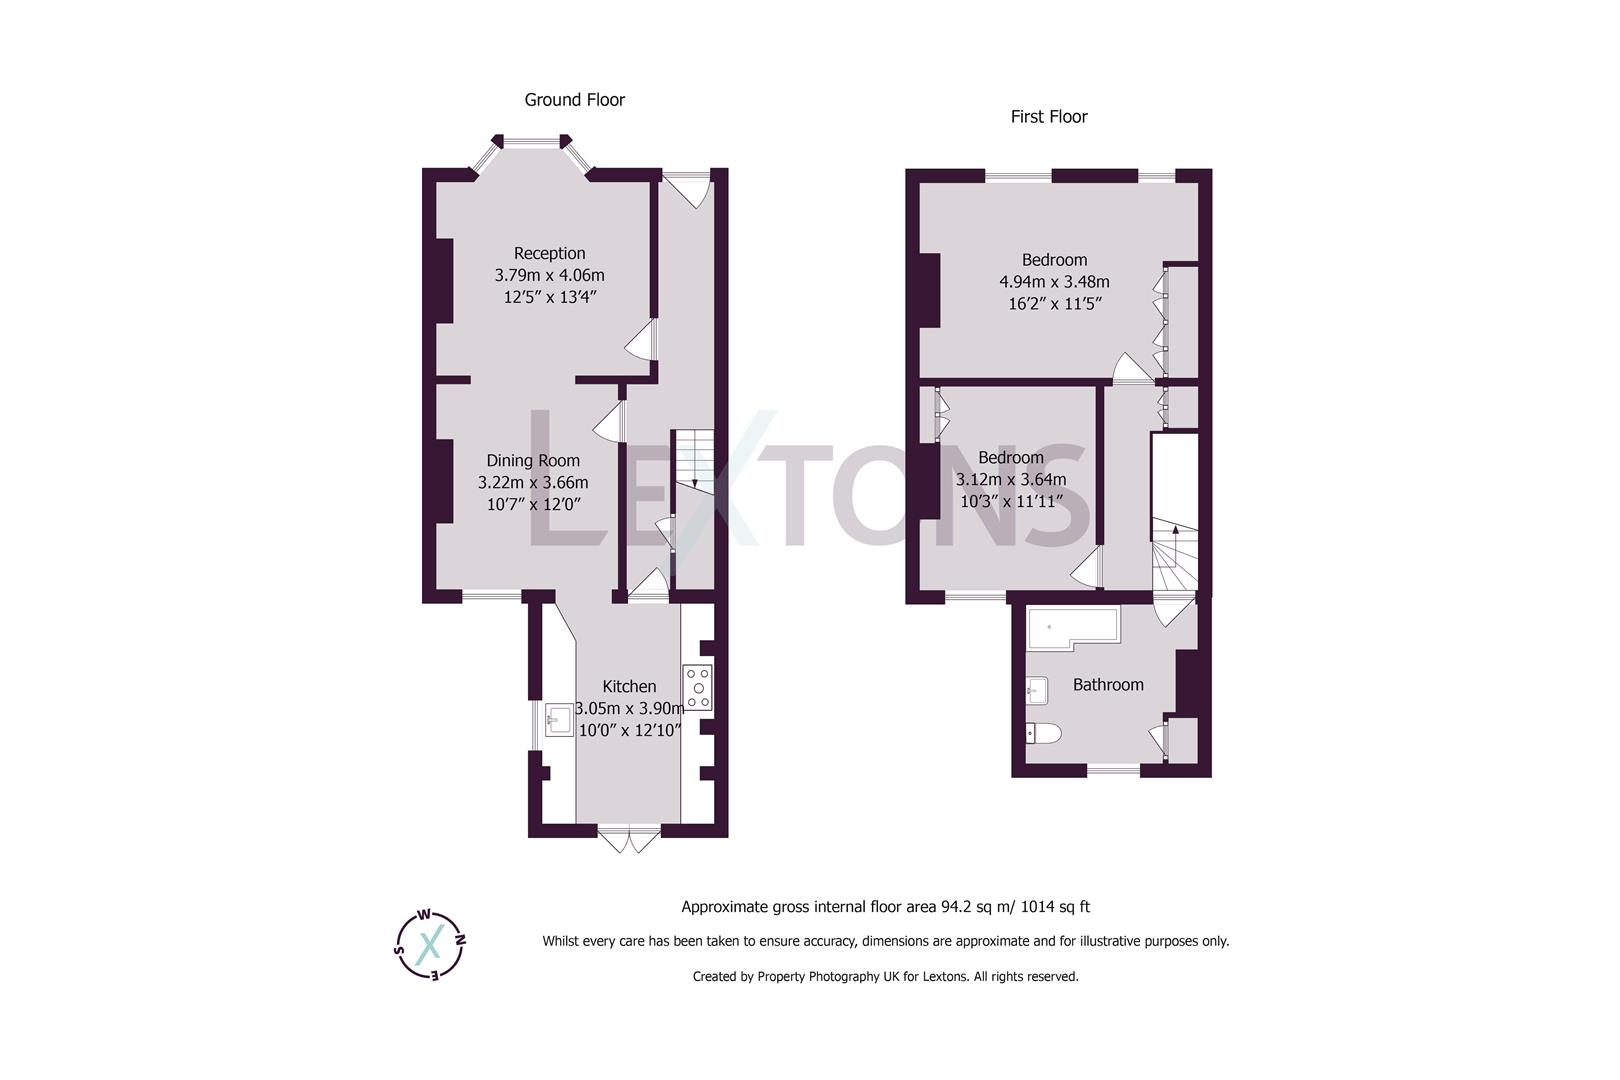 Floorplans For St. Leonards Avenue, Hove